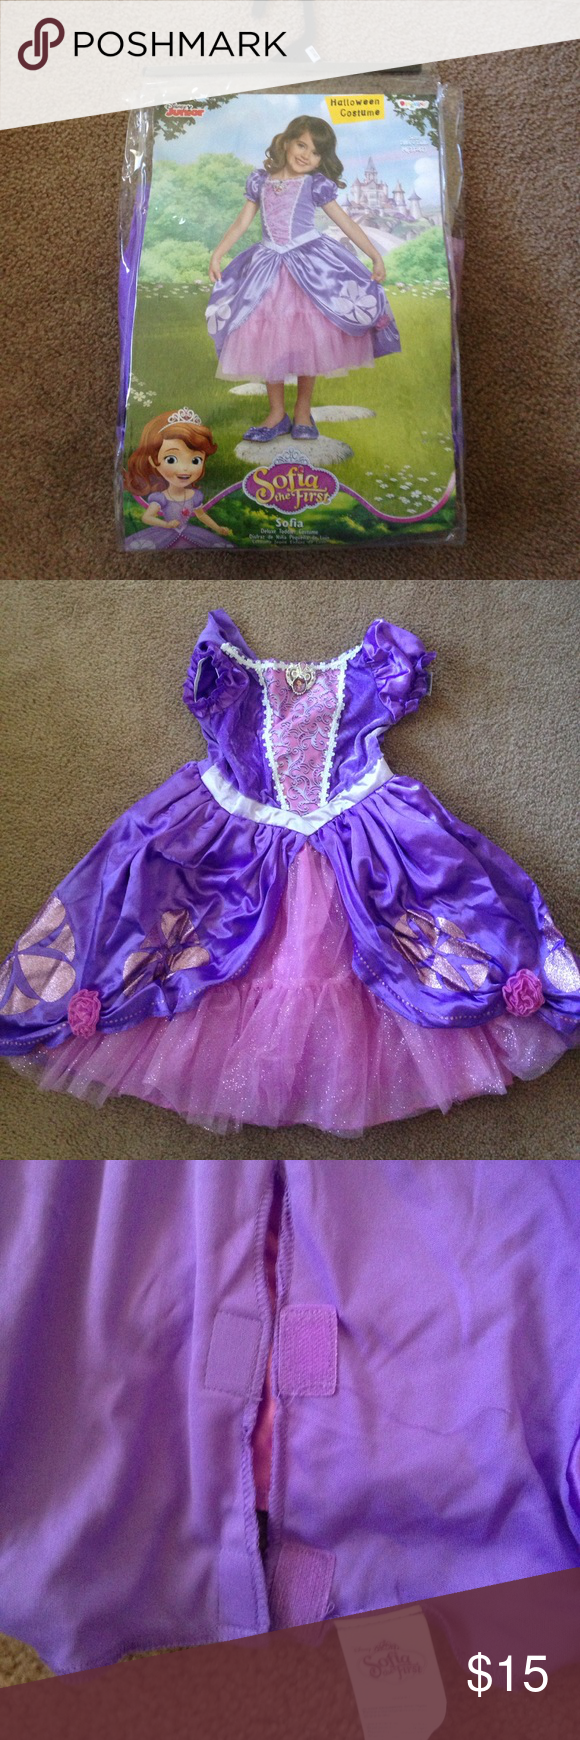 sofia the first halloween costume size 3t/4t